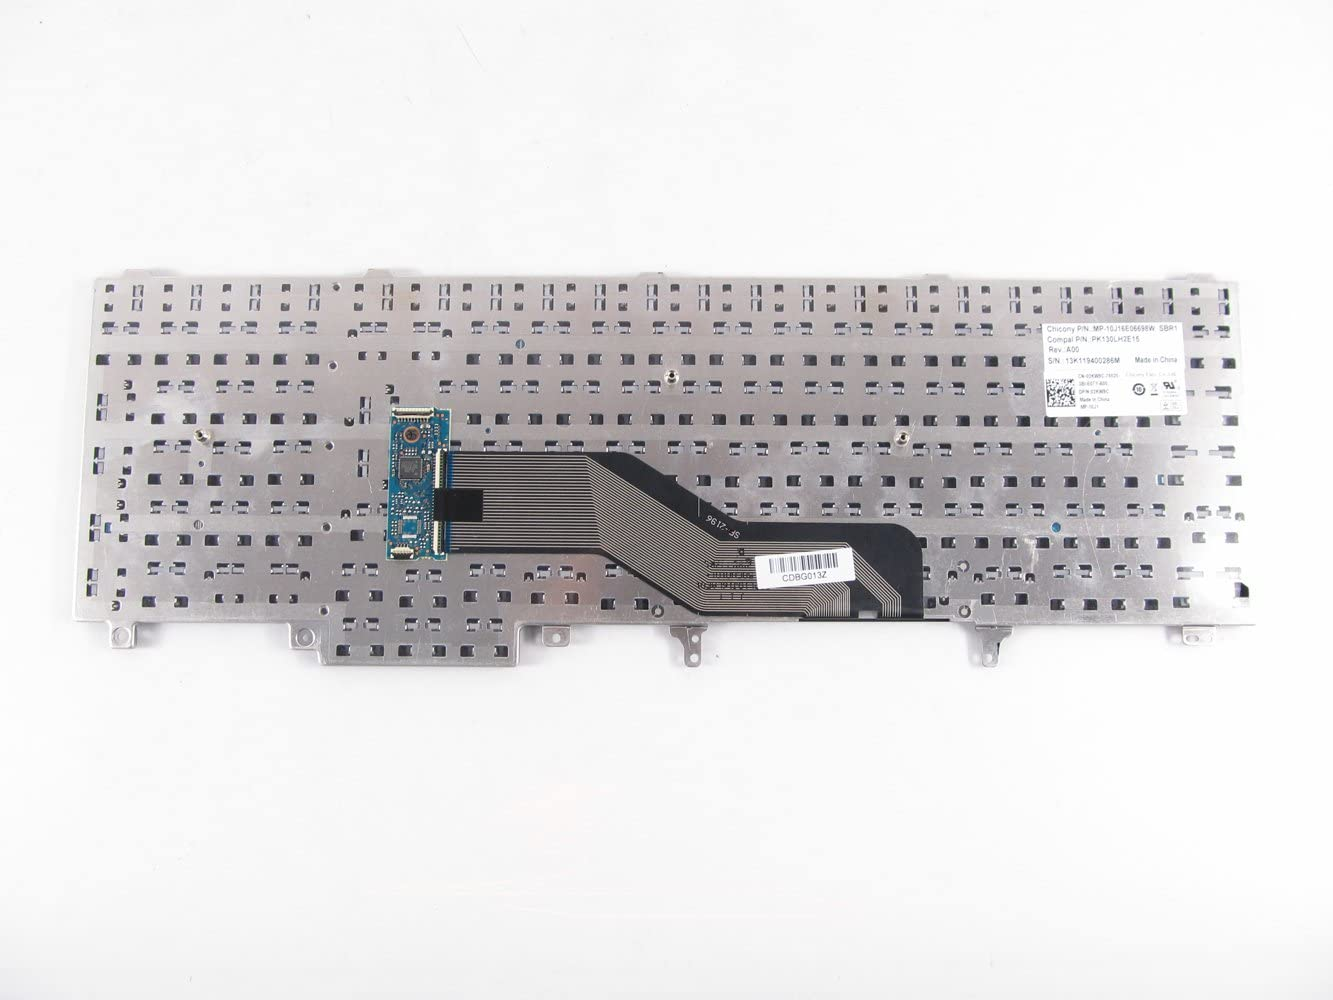 Abakoo New Keyboard for Dell Precision M4600 M4700 M4800 M6600 M6700 M6800 Latitude E5520 E5530 E6520 E6530 E6540 US HG3G3 0HG3G3 7T425 07T425 NSK-DW2BC 01 Non-Backlit